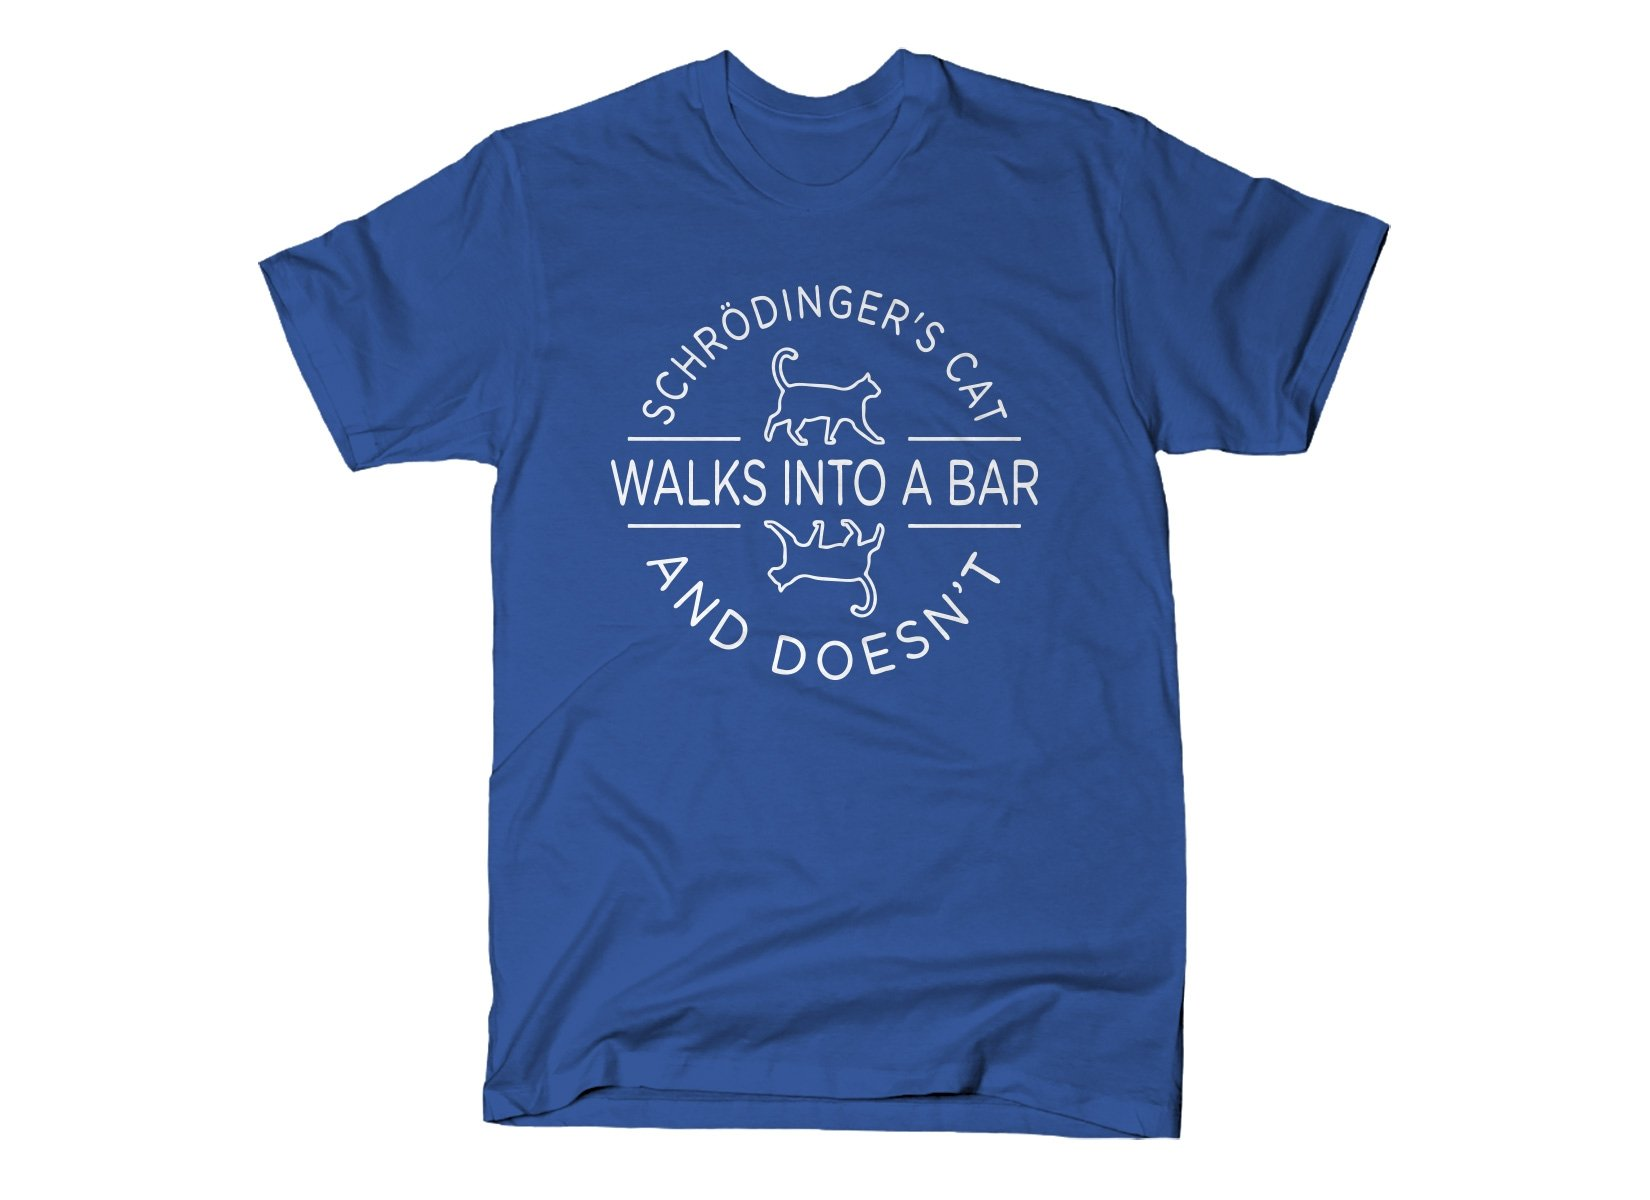 Schrodinger's Cat Walks Into A Bar on Mens T-Shirt